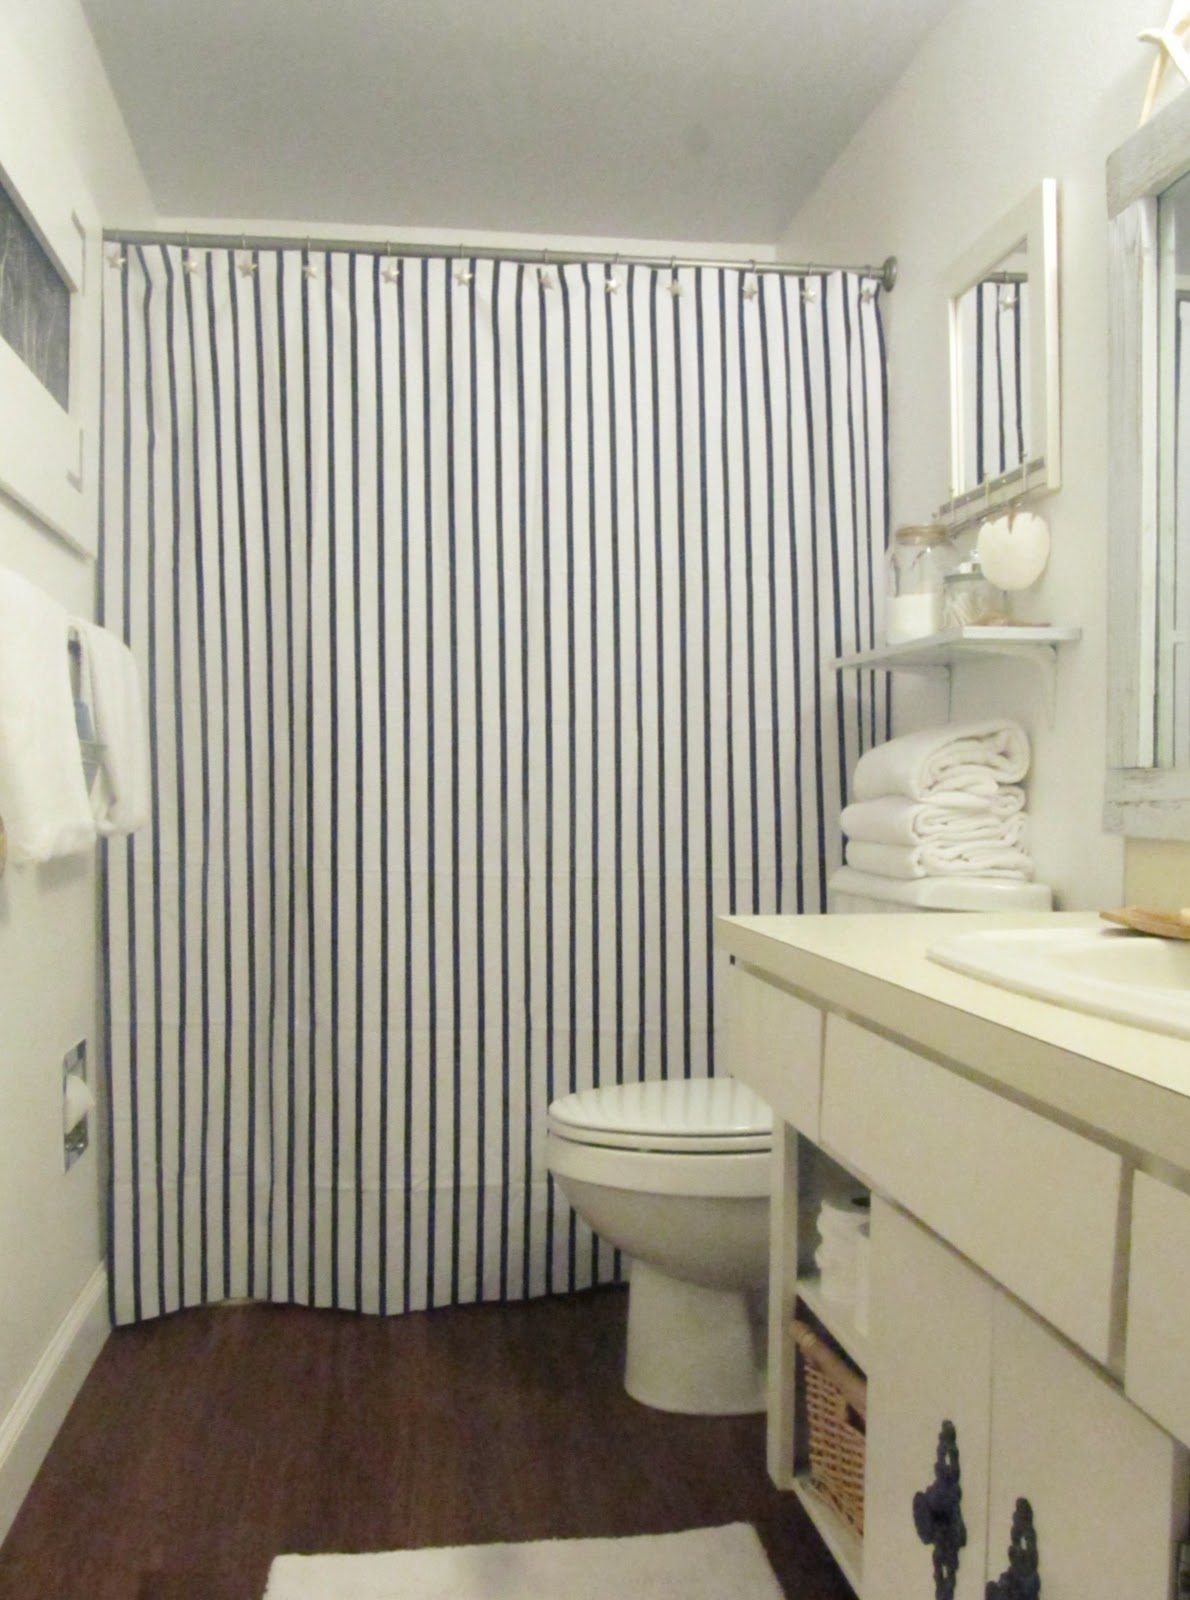 Fashionable Striped Shower Curtain The Homy Design within dimensions 1190 X 1600